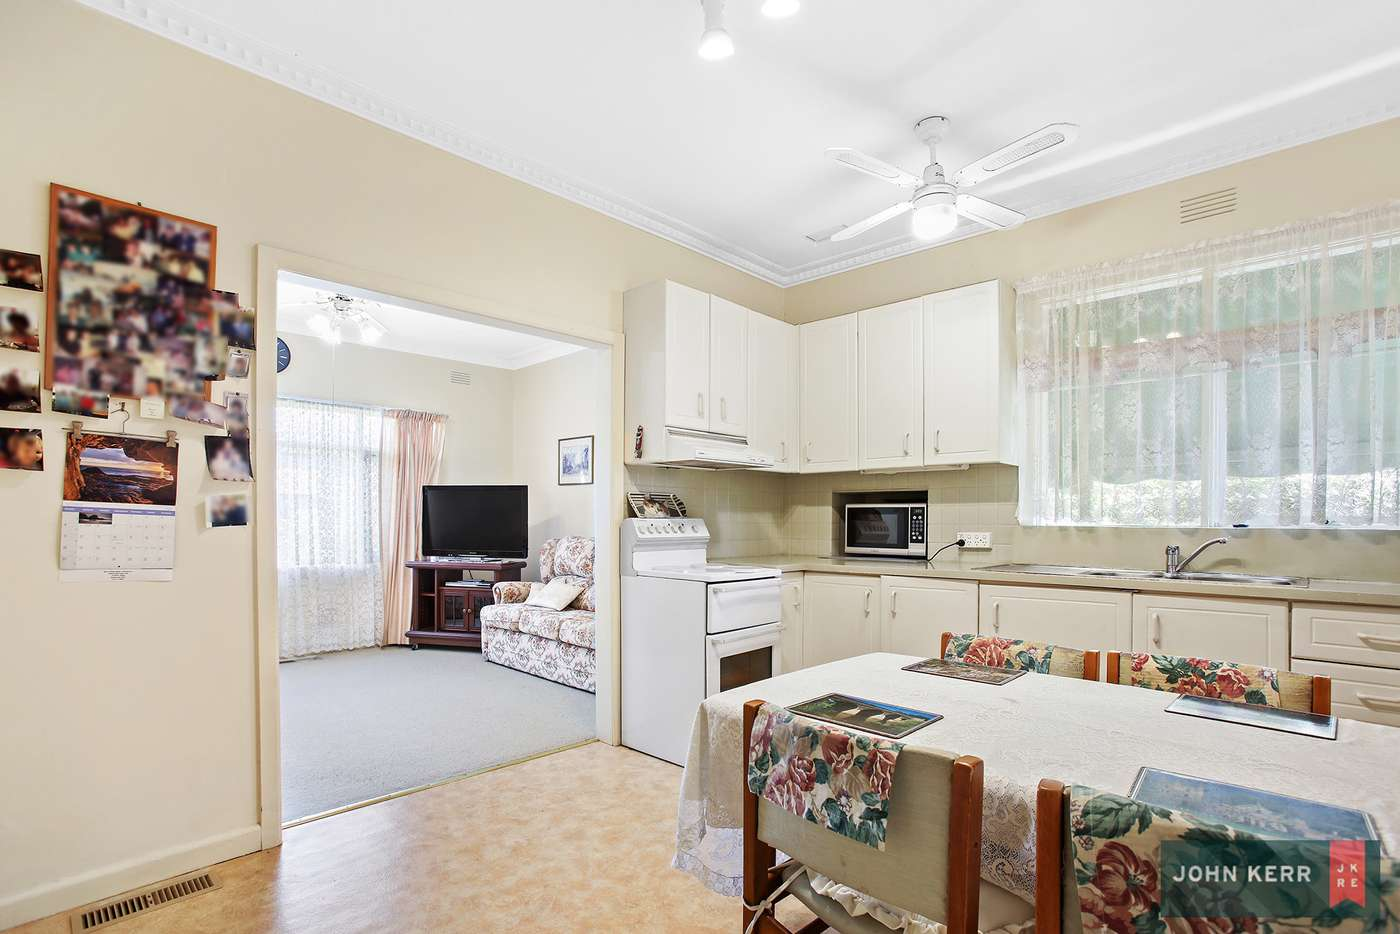 Fifth view of Homely house listing, 8 Mason Street, Newborough VIC 3825